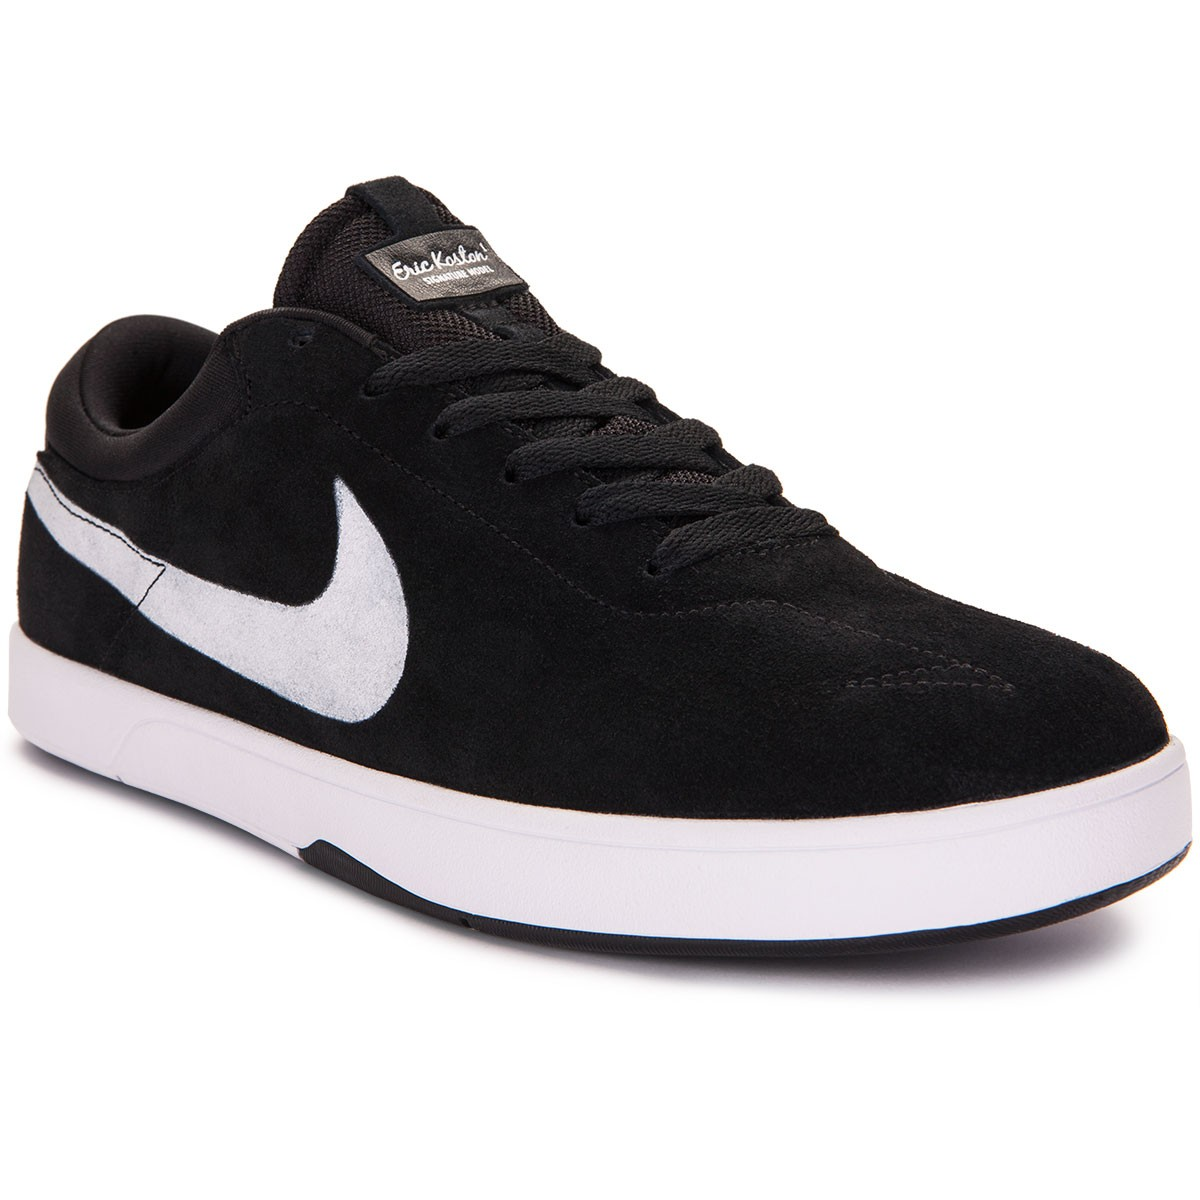 3c545cd84e0 Nike SB Eric Koston SE Shoes - Black White - 10.0